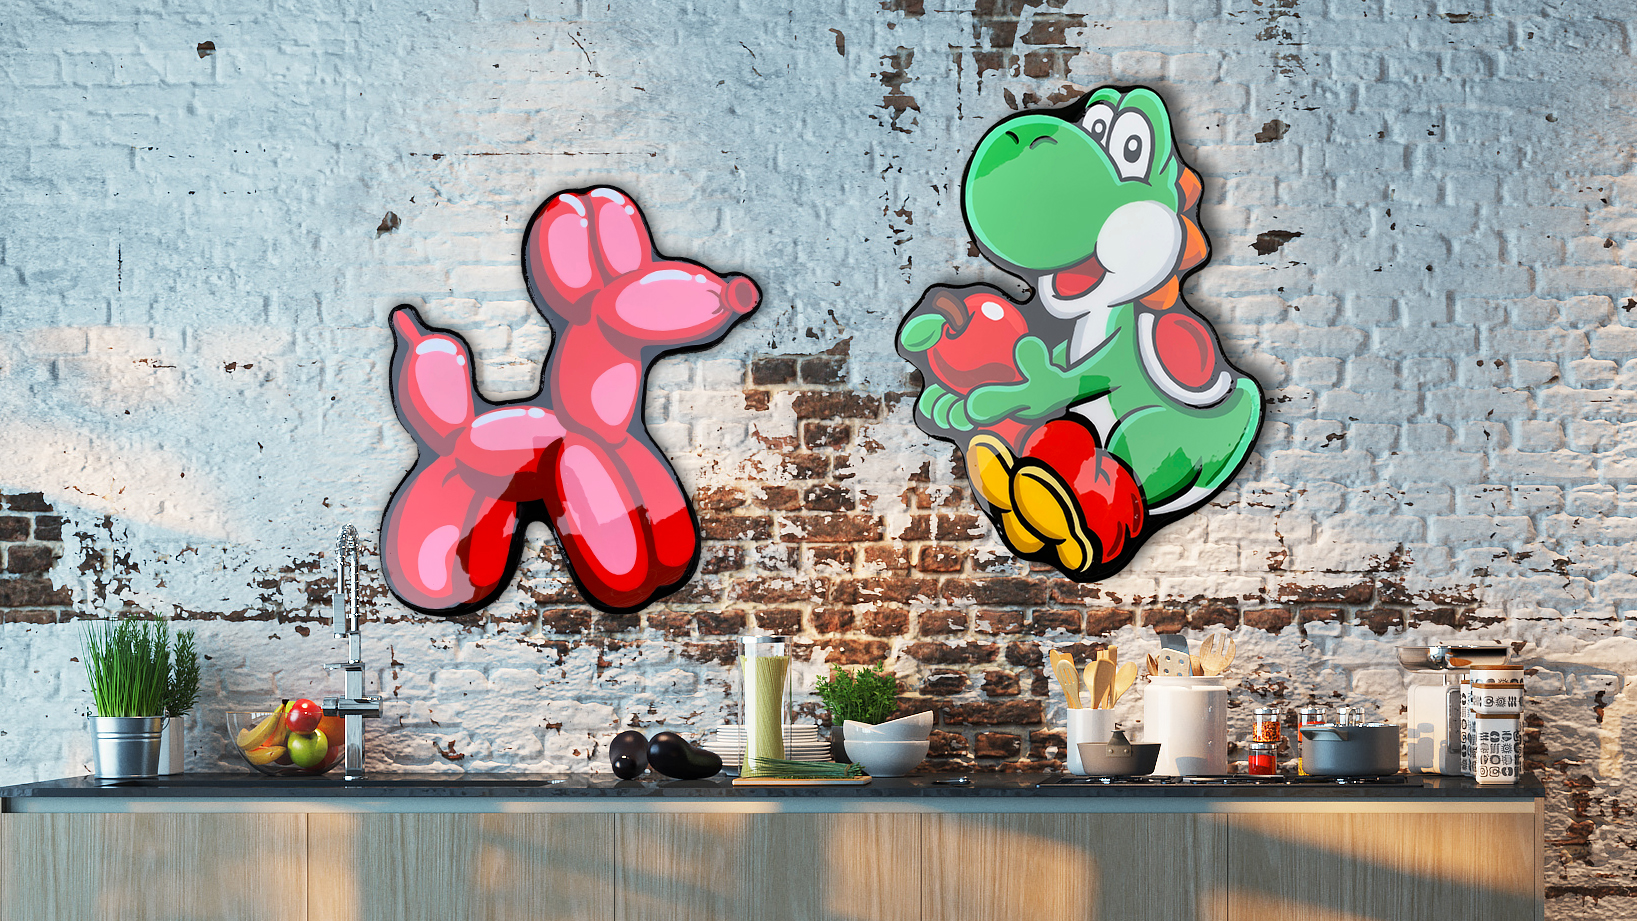 Ballon Friend and Yoshi art- Safe to hang in kitchen or bathroom